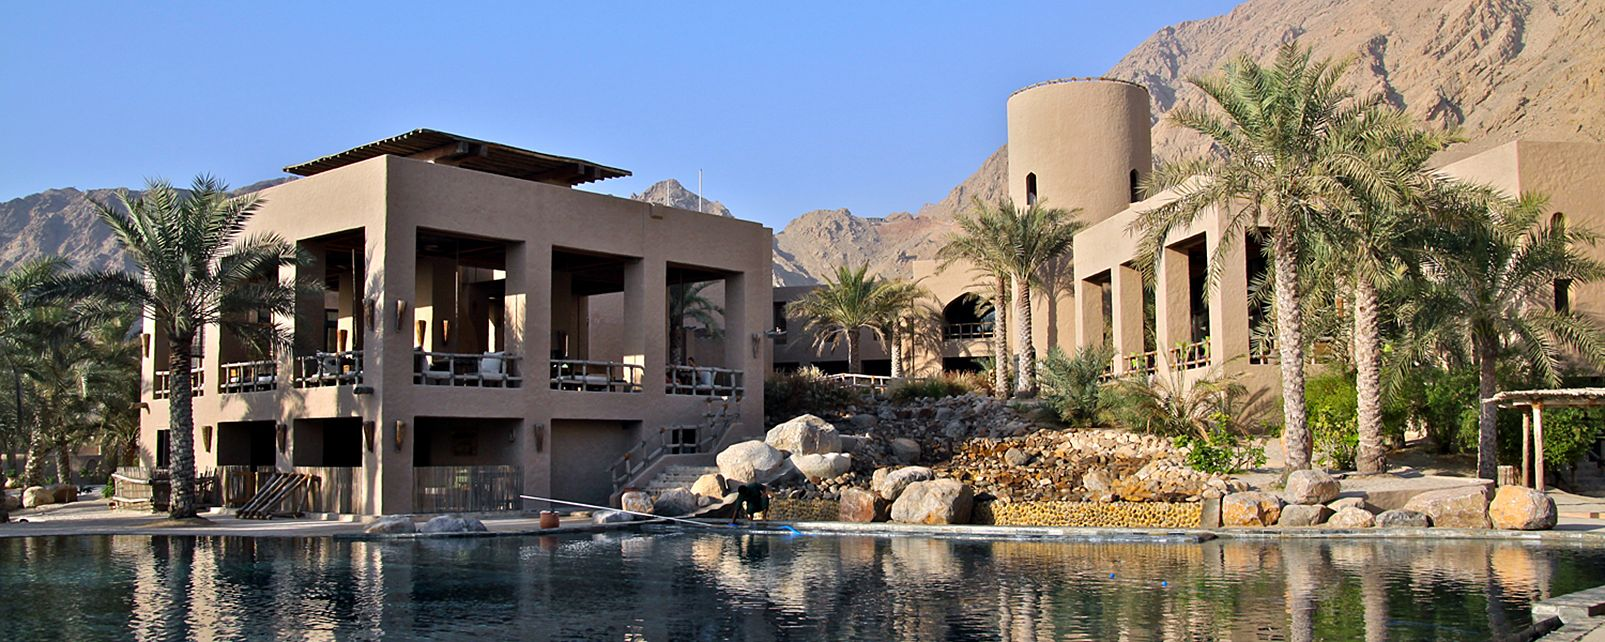 Hotel Six Senses Zighy Bay